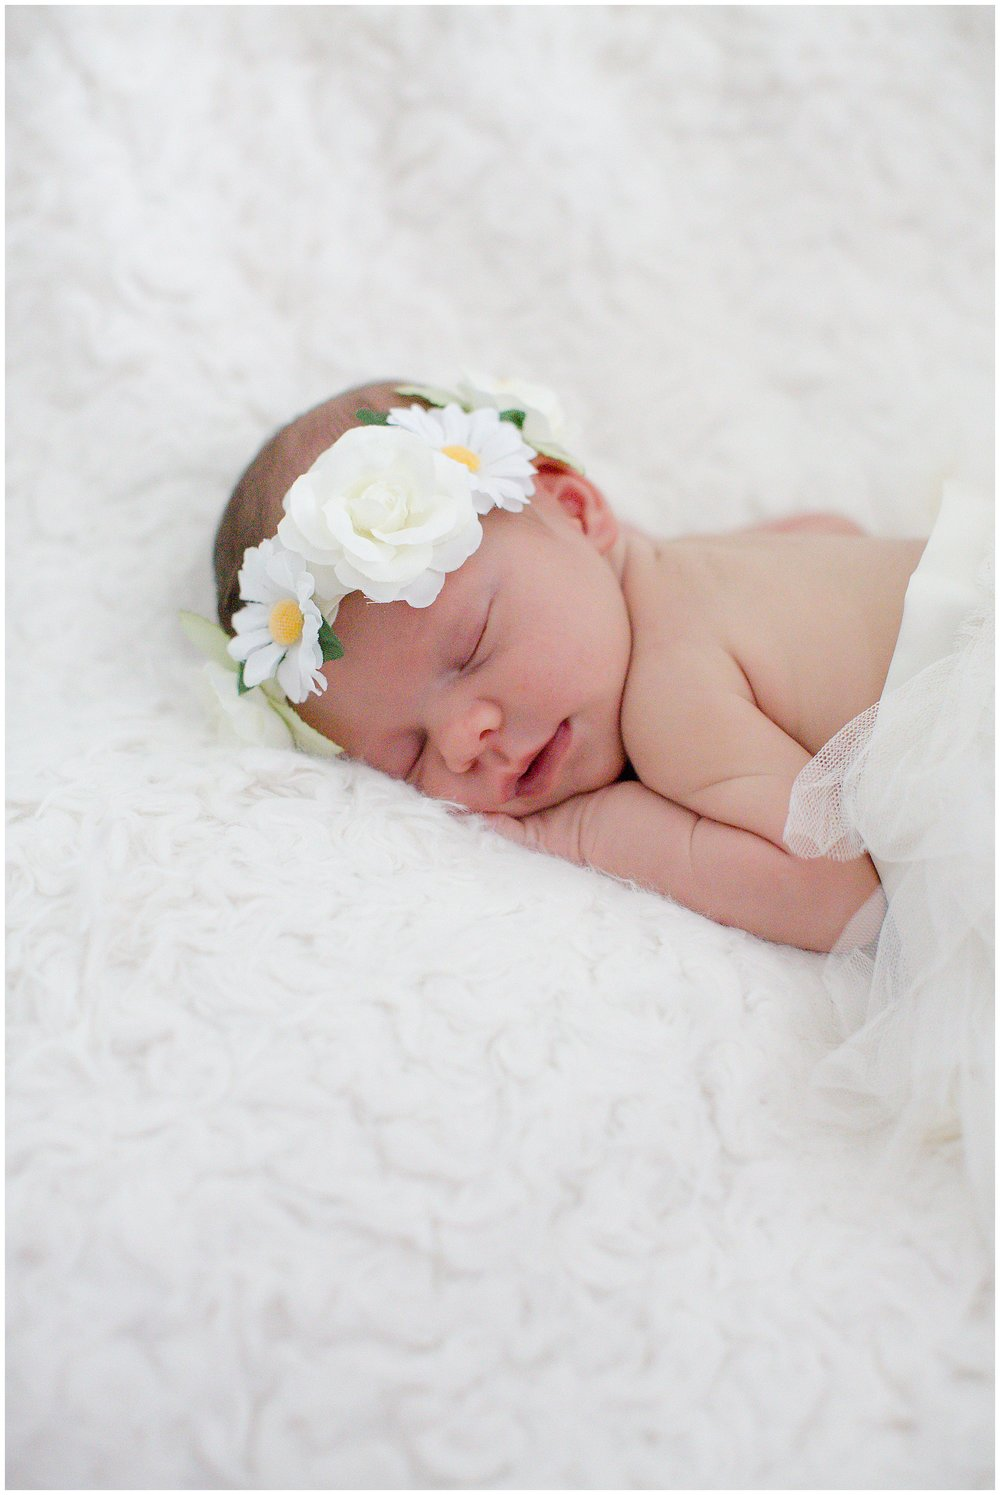 Letendre-newborn-session_0011.jpg